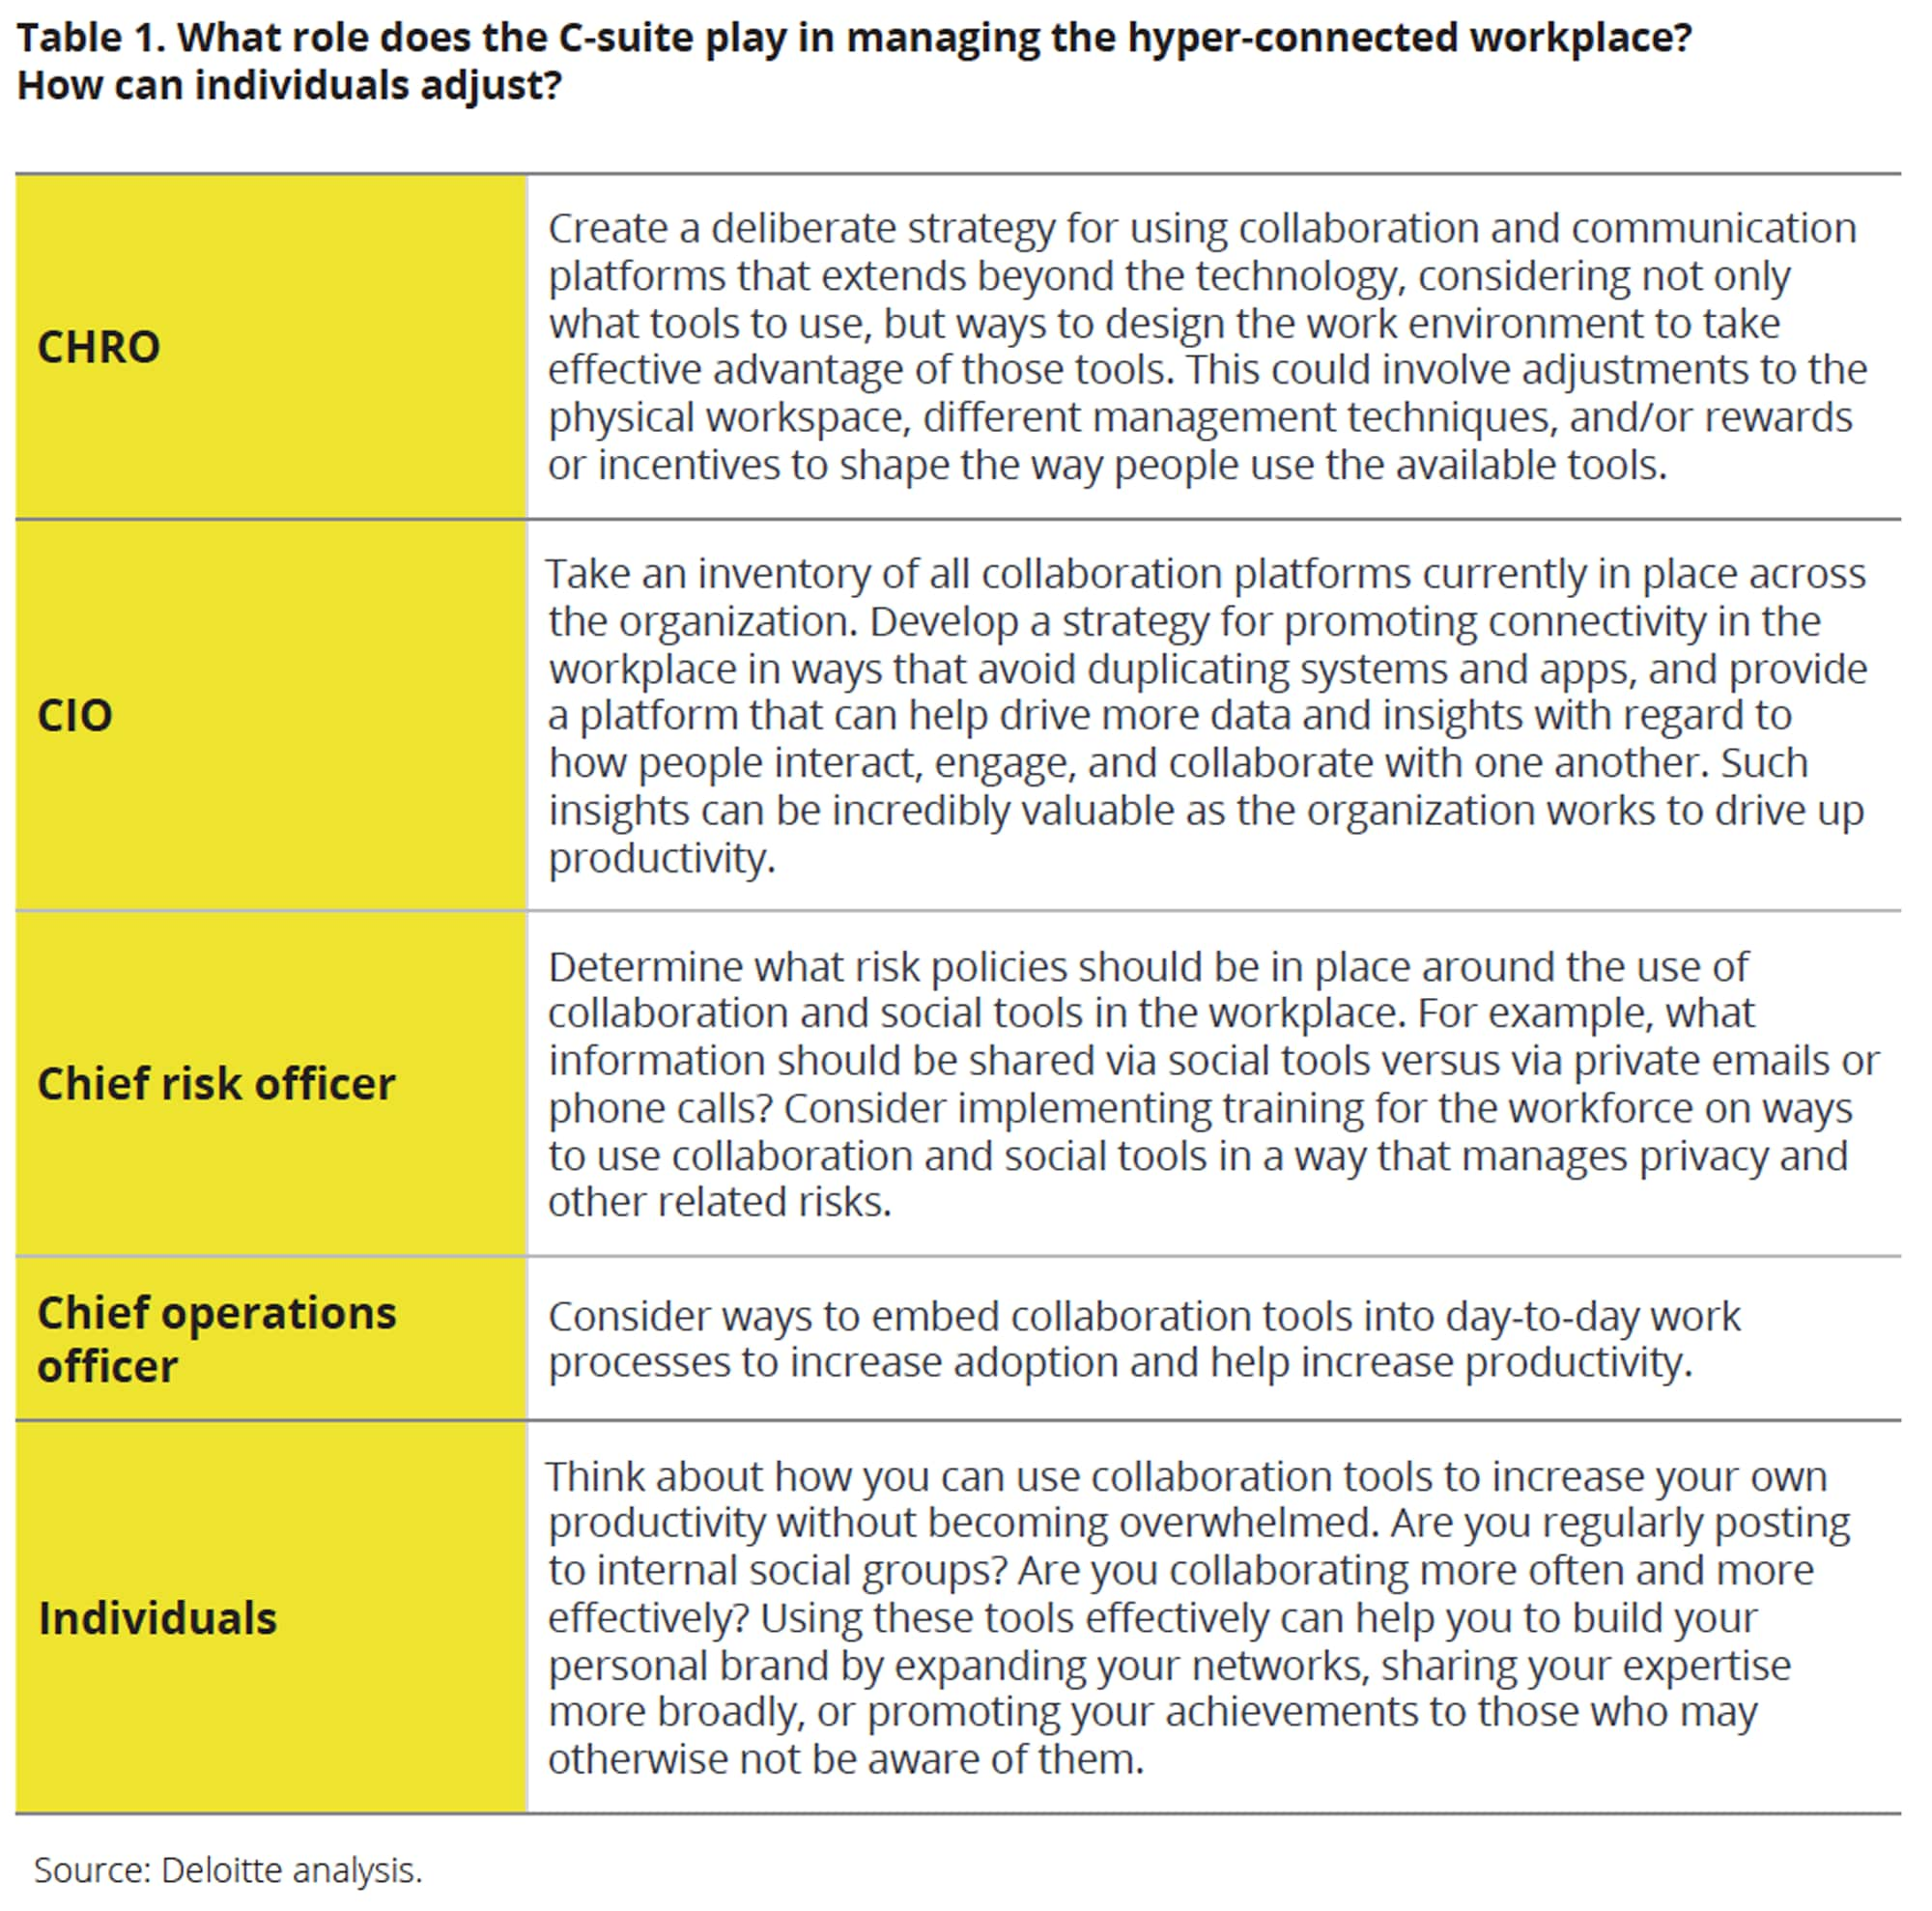 What role does the C-suite play in managing the hyper-connected workplace? How can individuals adjust?